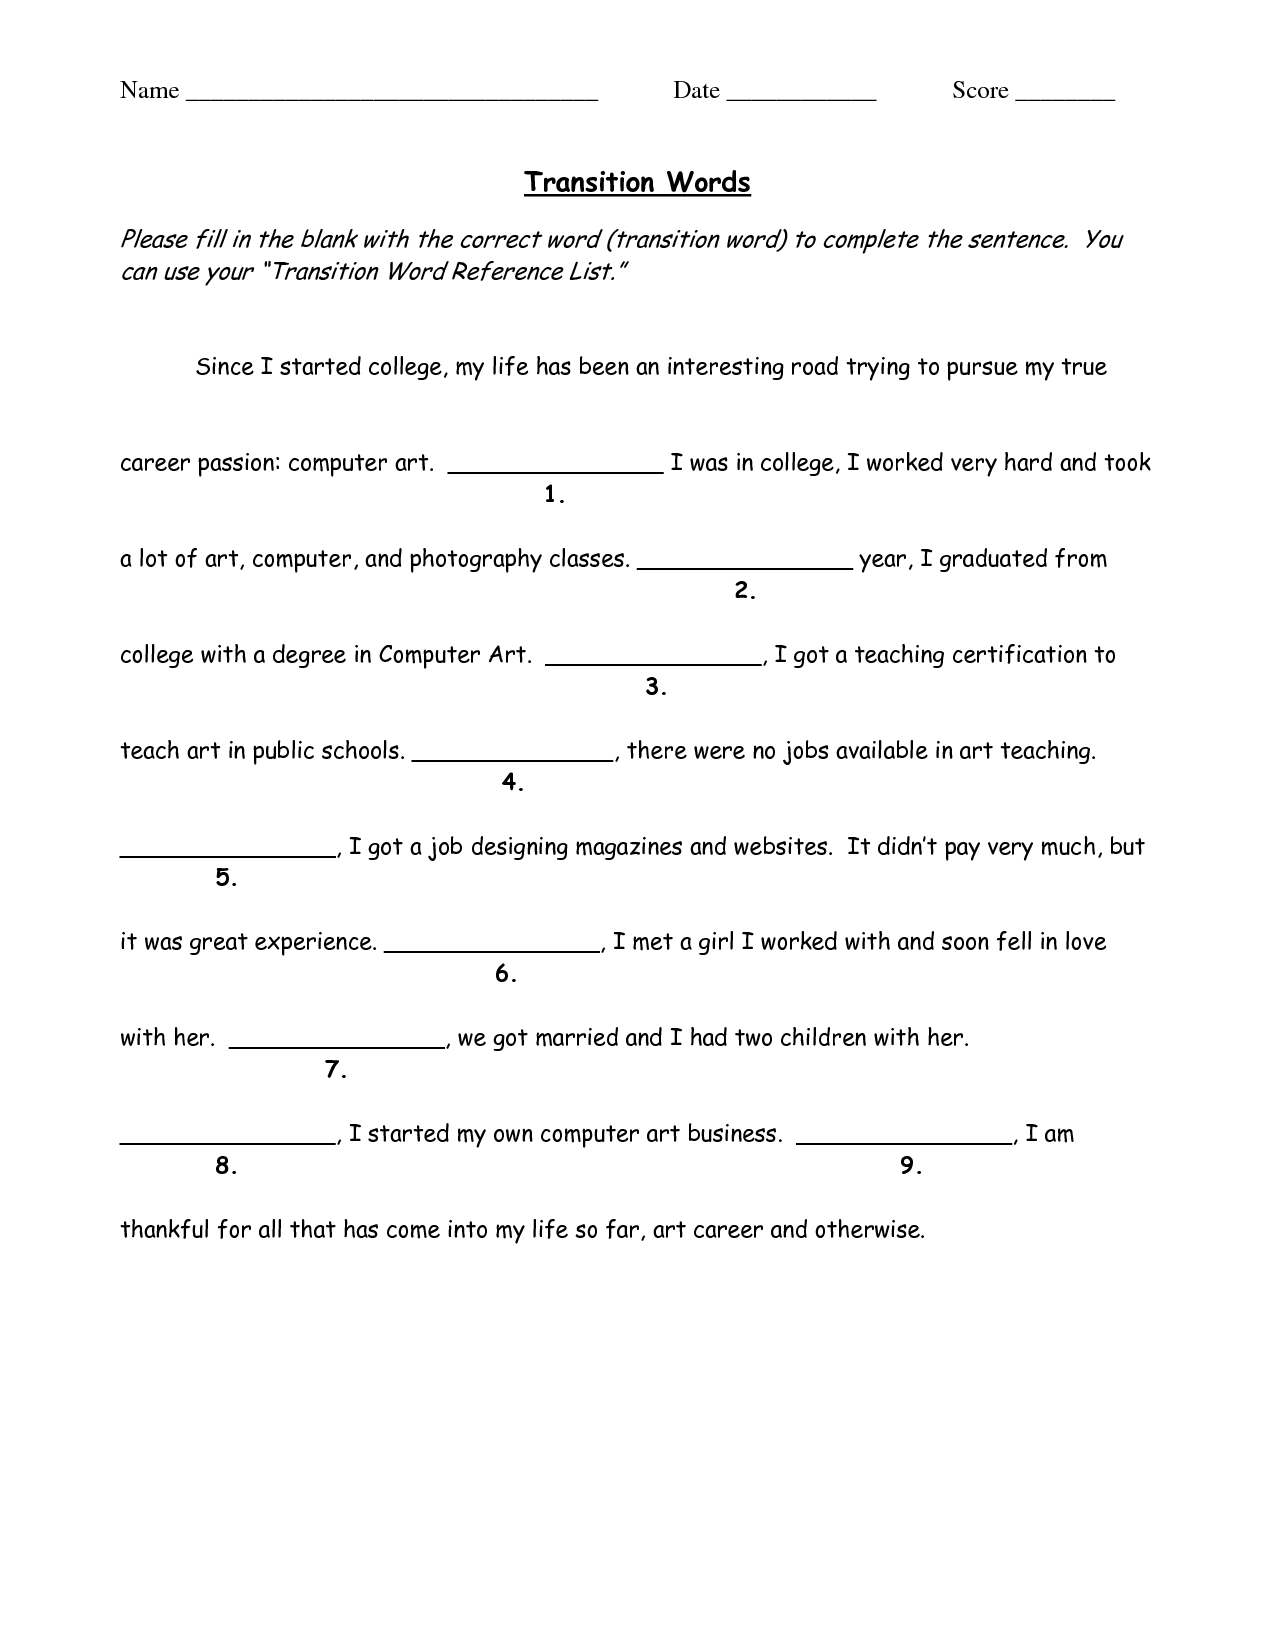 worksheet Transition Words Worksheet transition words worksheets free library download and nd verse v ri ti